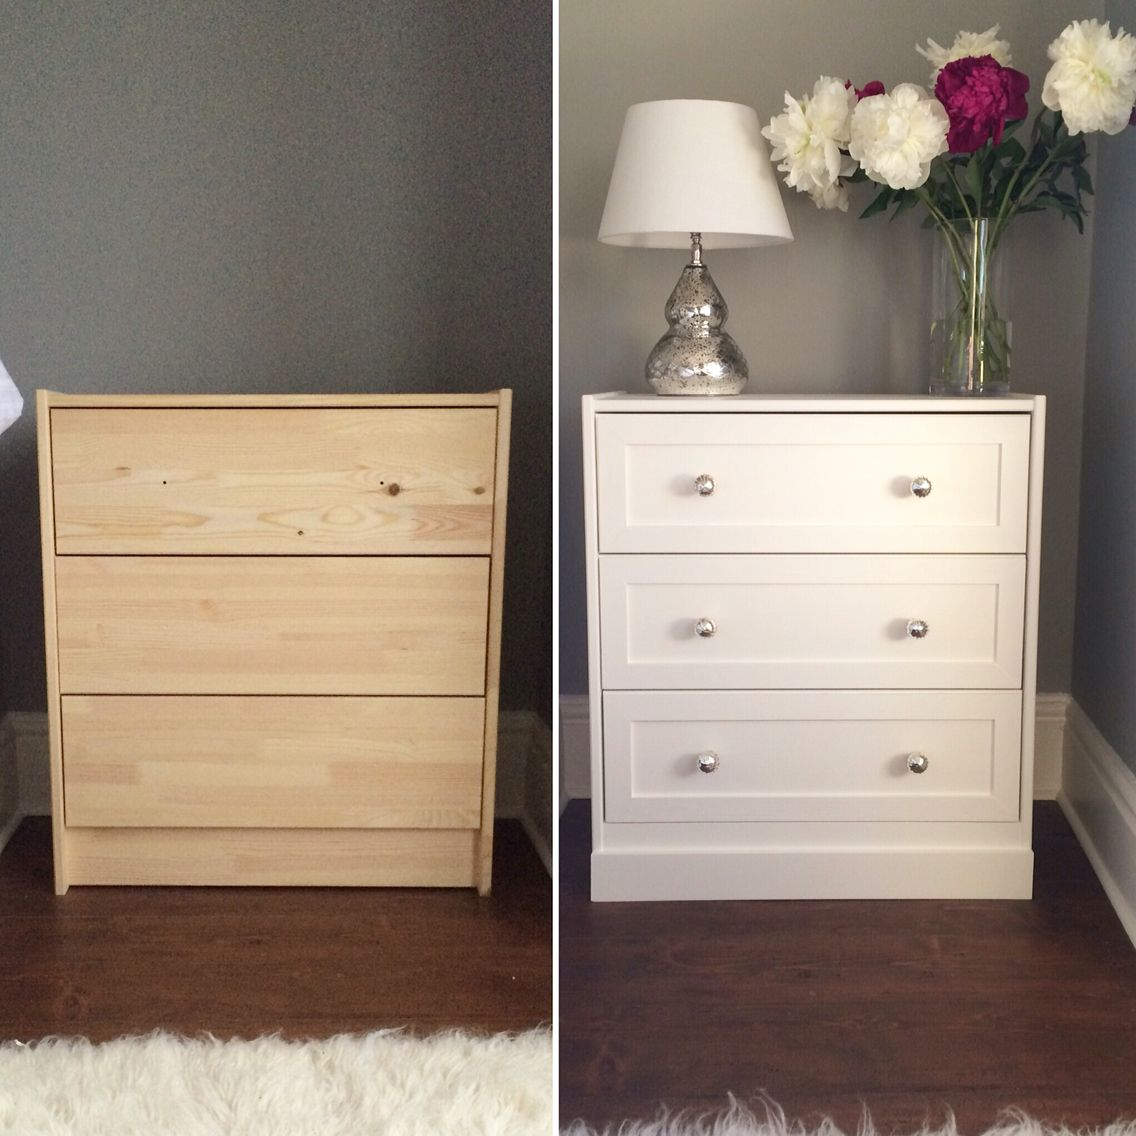 Ikea Rast Ikea Rast Hack Bedside Table Diy Farrow And Ball White Company